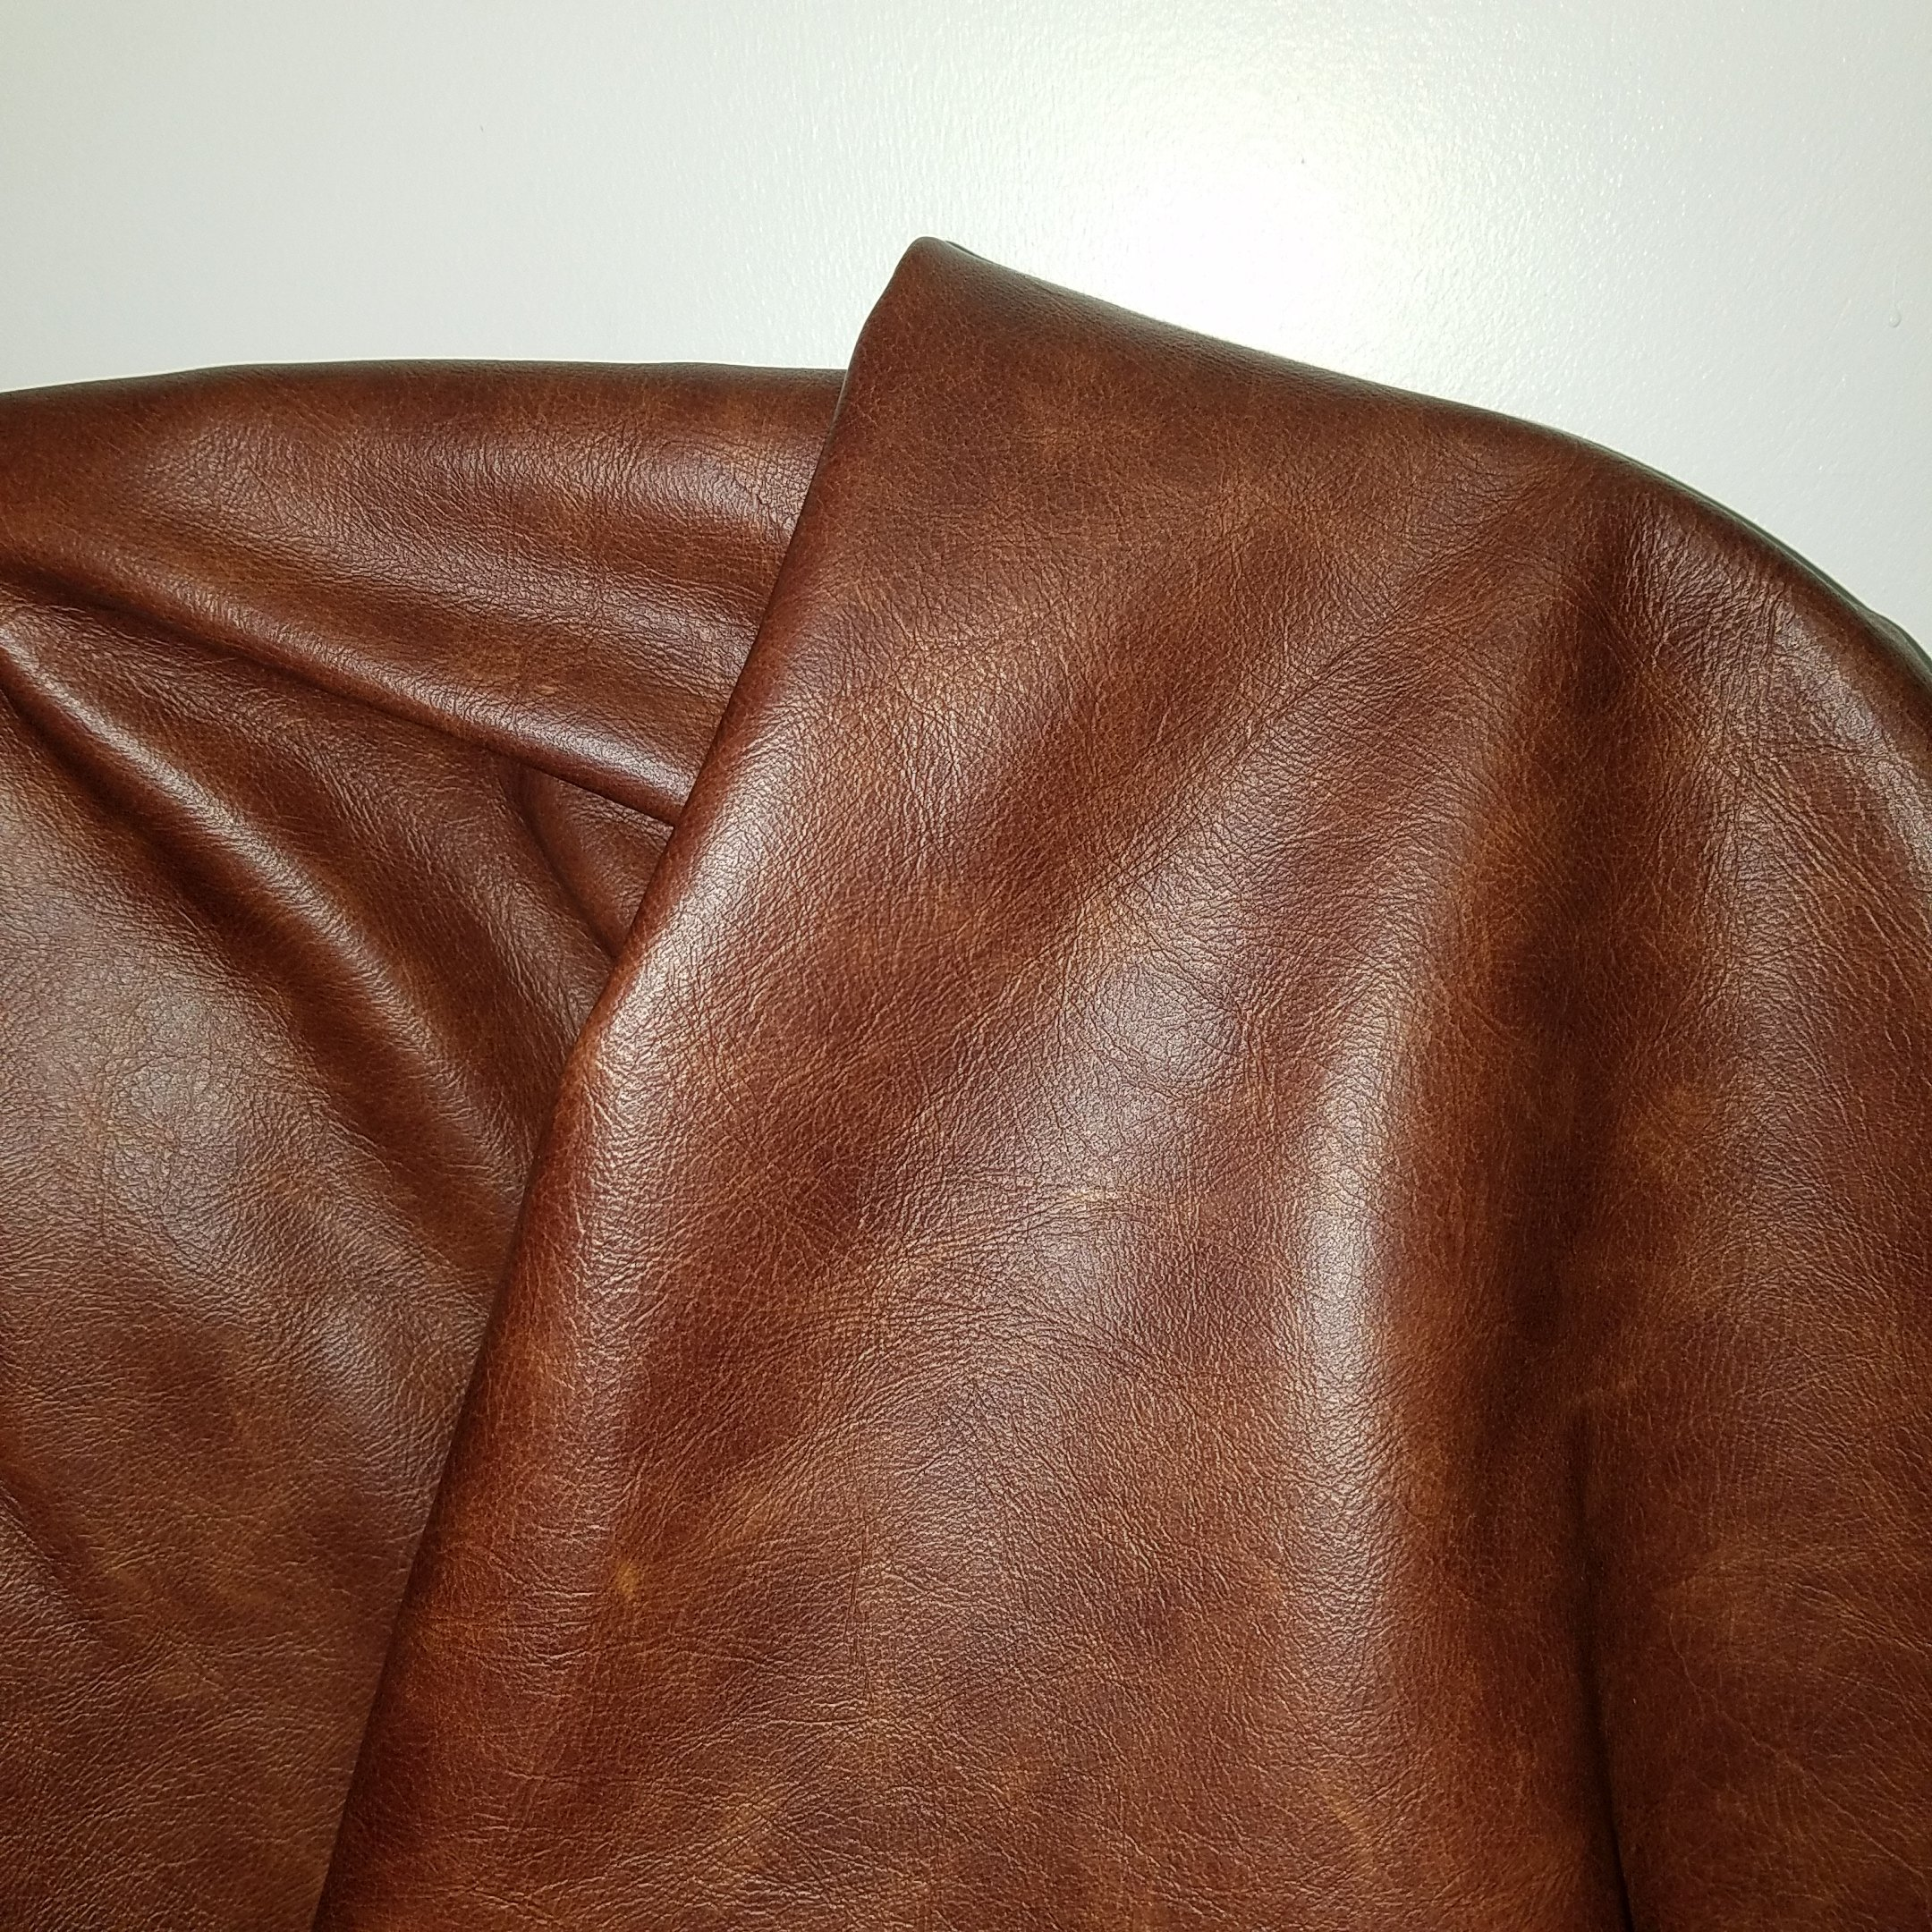 NAT Leathers Brown Vintage Two Tone Soft Upholstery Chap Cowhide 2.5 oz Genuine Leather Hide Skin 42 to 44 Square Feet (60''x70'') Produced in Italy (Brown 42 sq.ft.)